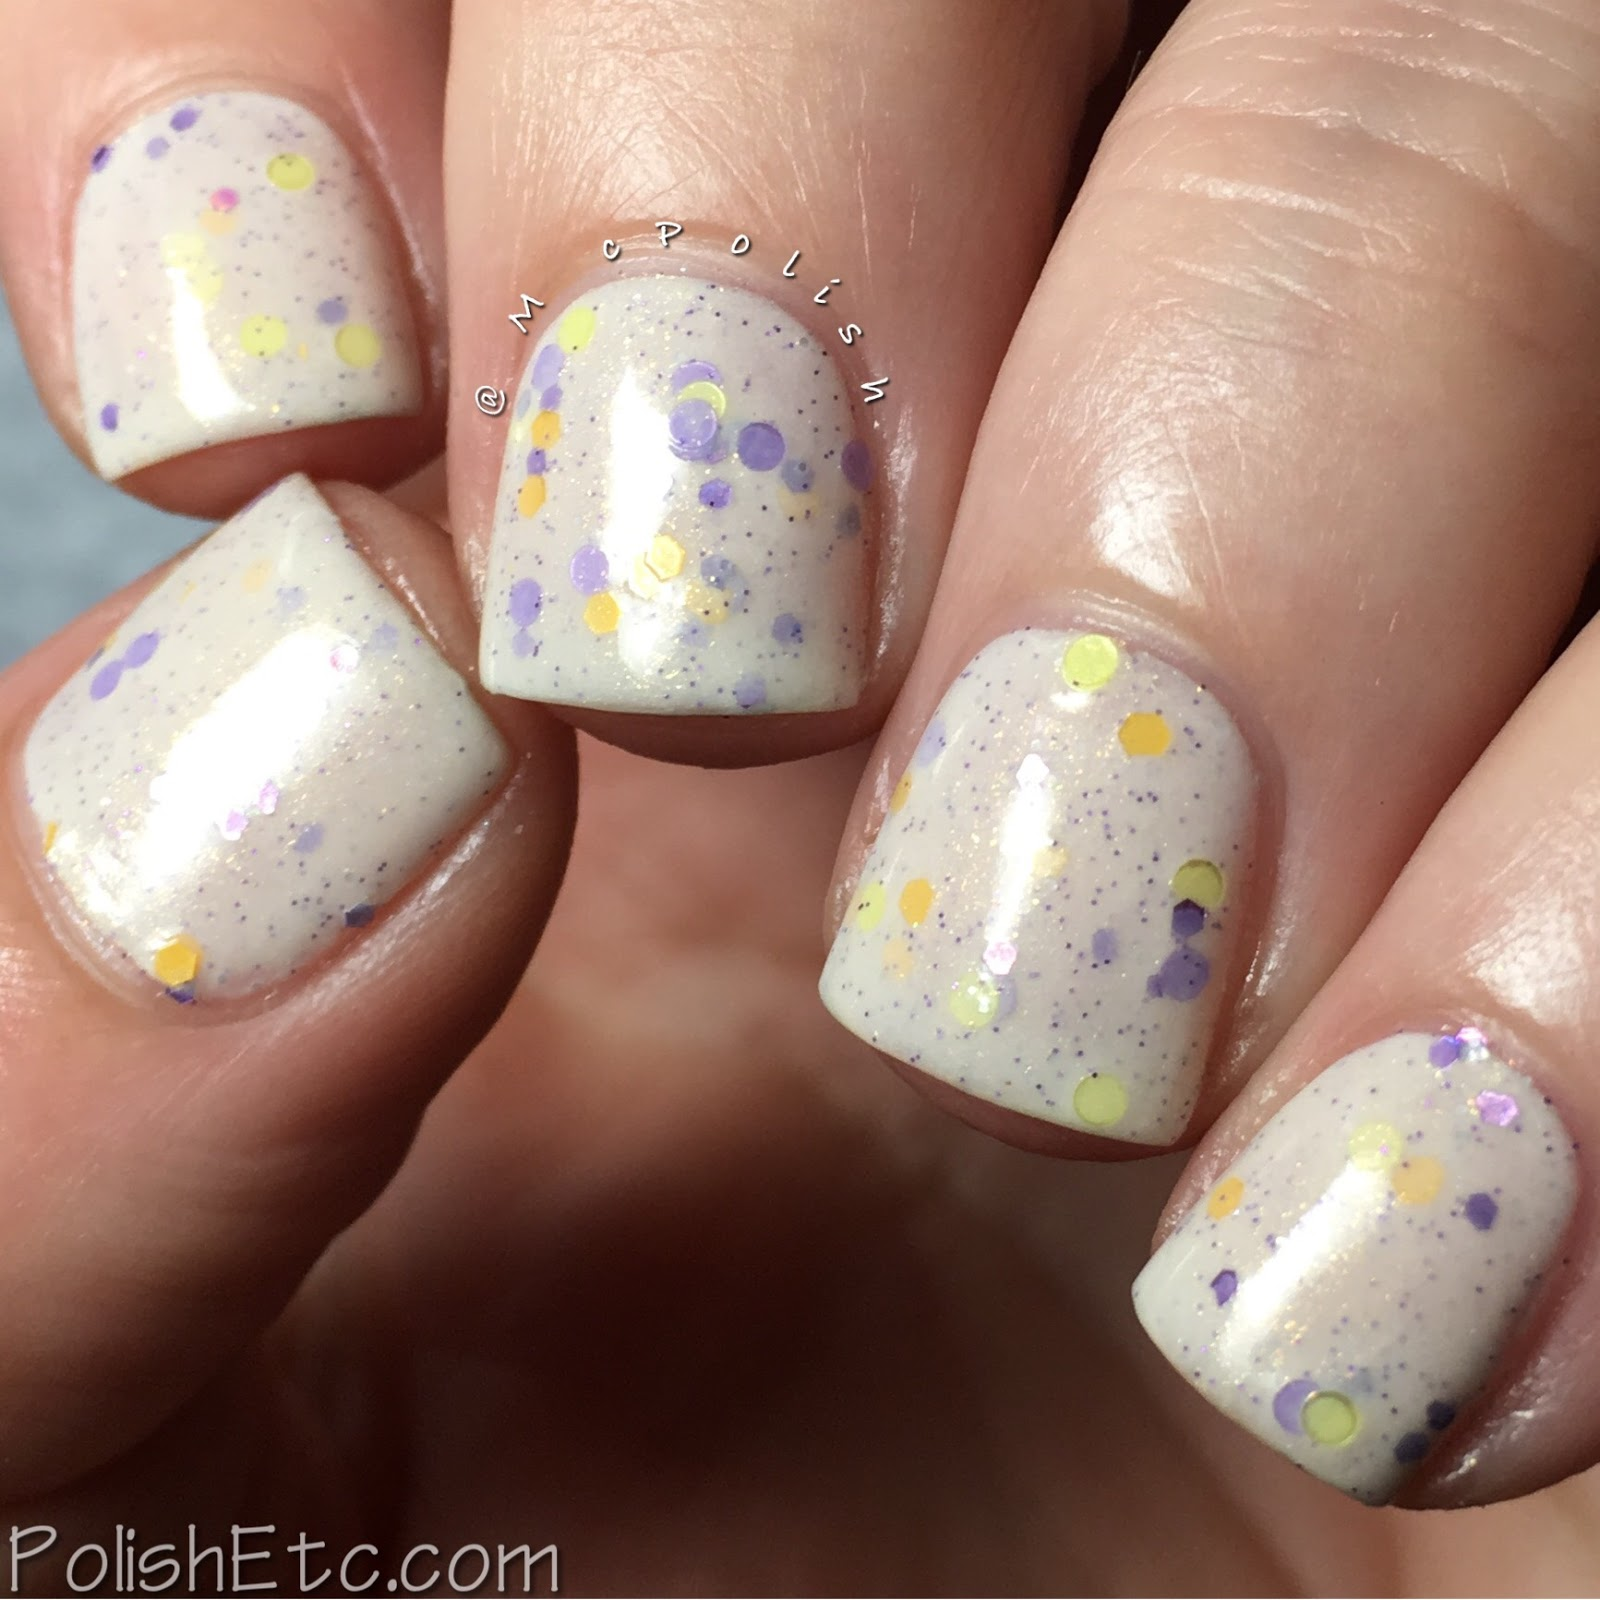 Chirality Polish - Mosura no Uta Collection - McPolish - The Rebirth